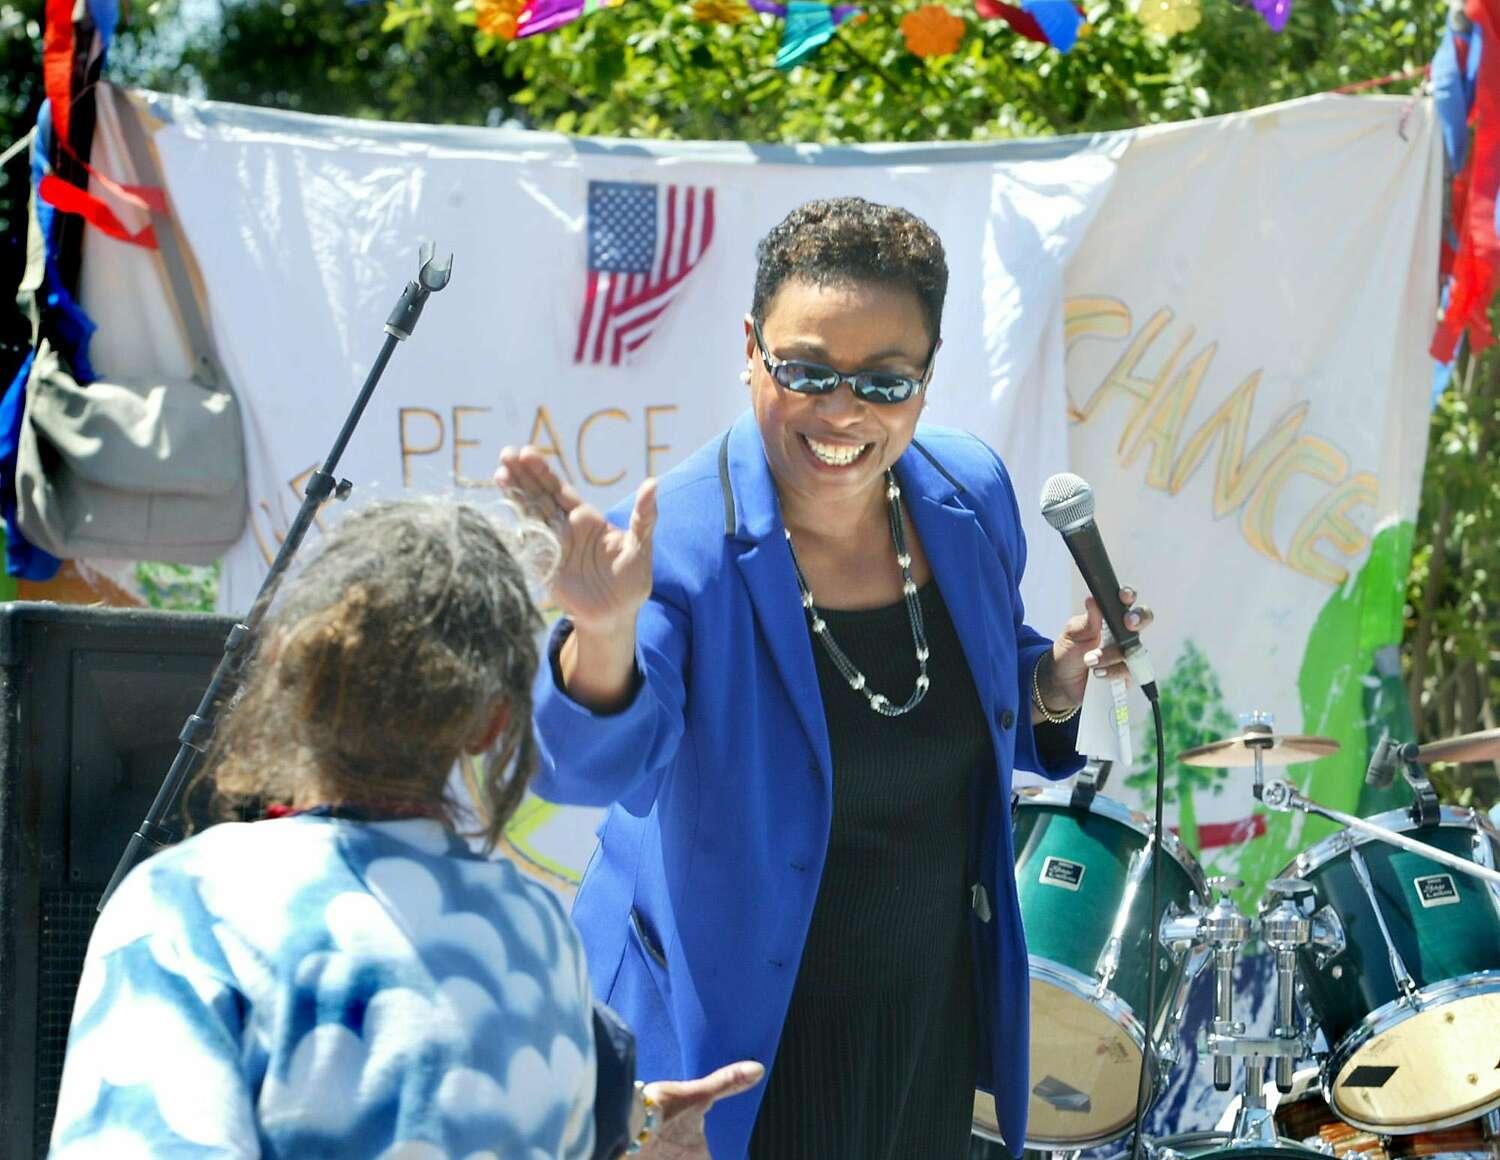 U.S. Rep. Barbara Lee holds a microphone and smiles as she gives a low-five to a person after a speech in Berkeley, Calif. in 2003.